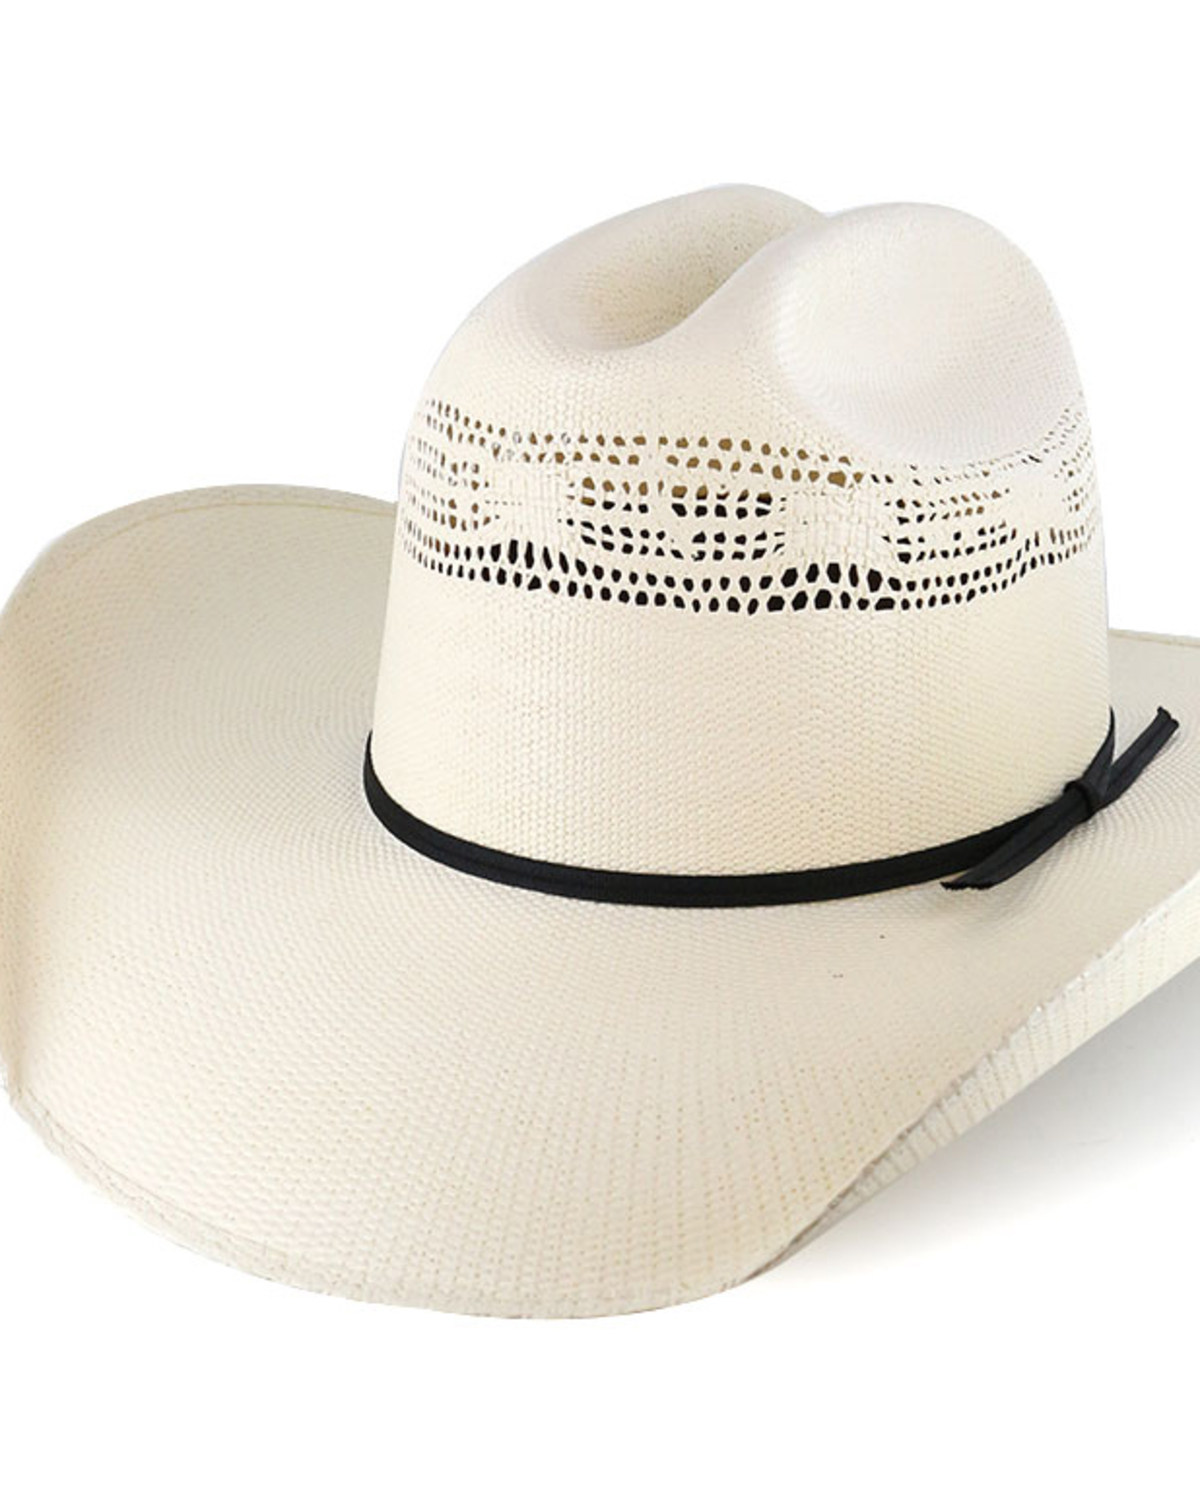 Cody James® Cattleman s Crease Straw Western Hat  a53eb6fc81f4